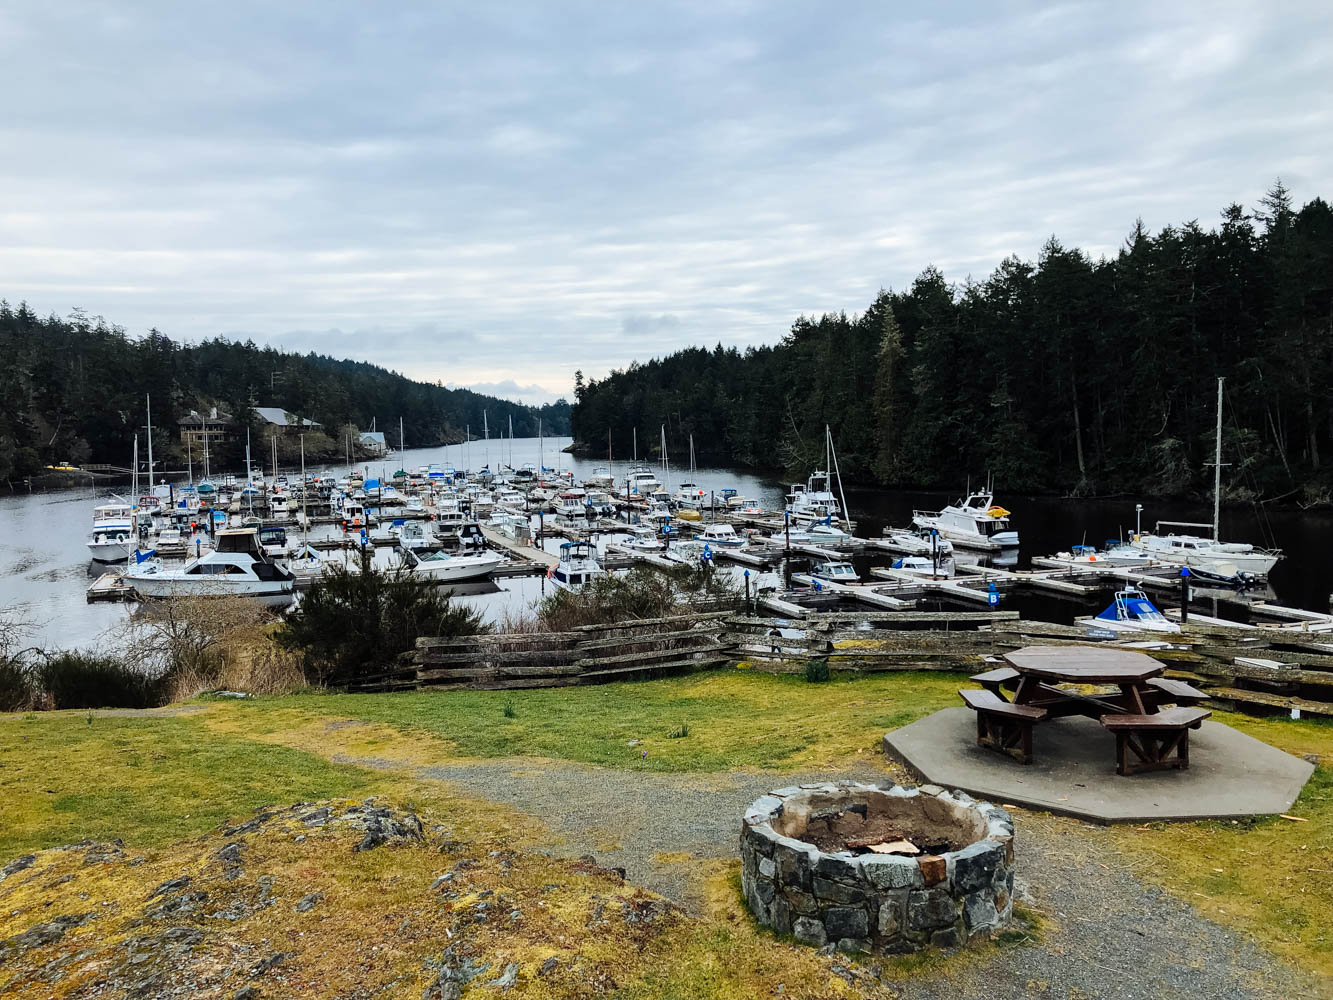 The view from our beautiful campground - Pedder Bay RV Resort and Marina.